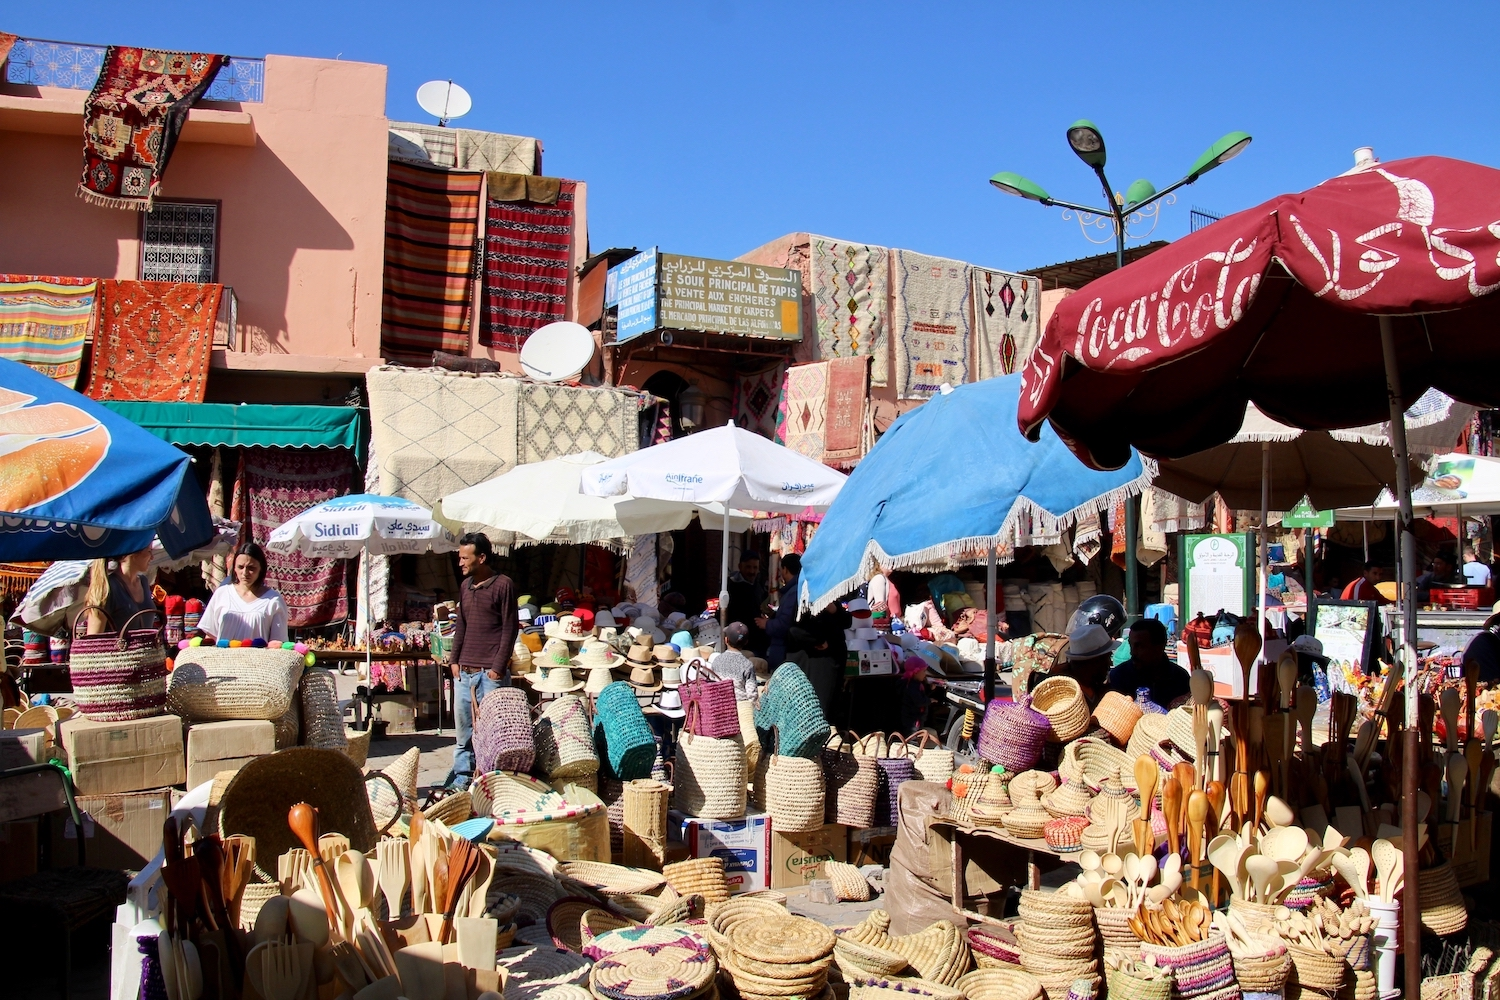 Spices and rugs at the Marrakech's market